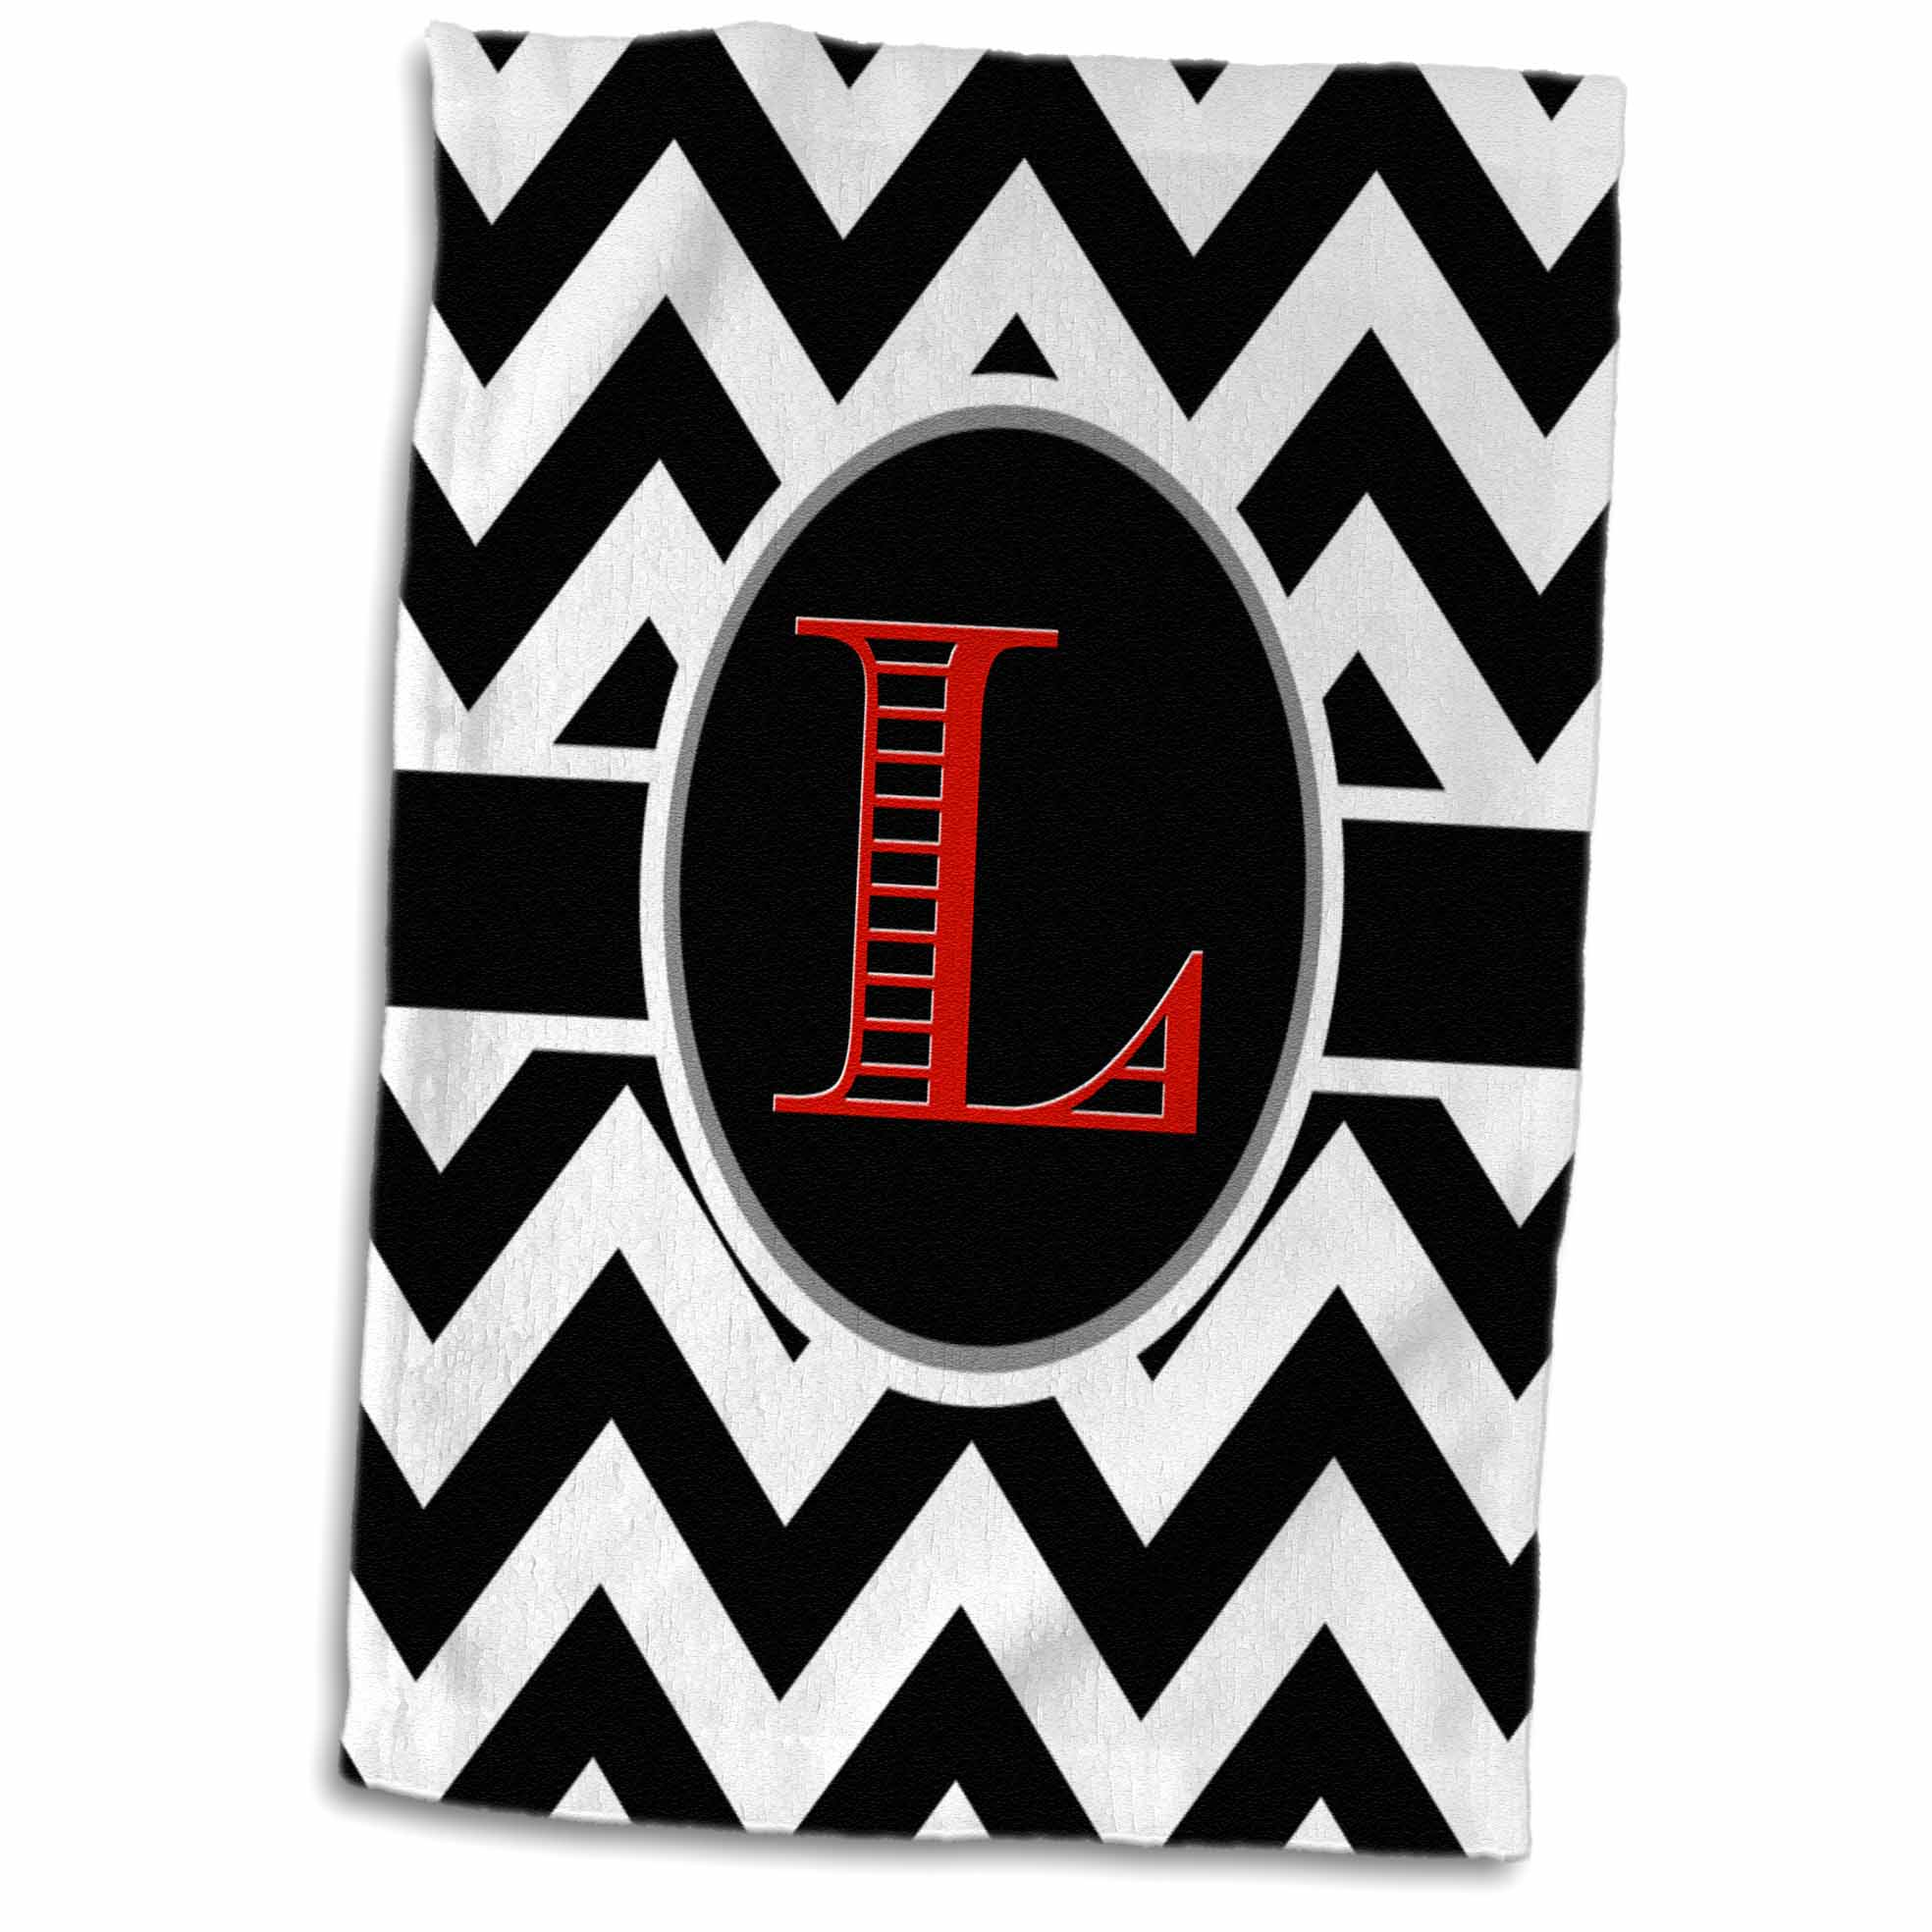 3dRose Black and white chevron monogram red initial L - Towel, 15 by 22-inch